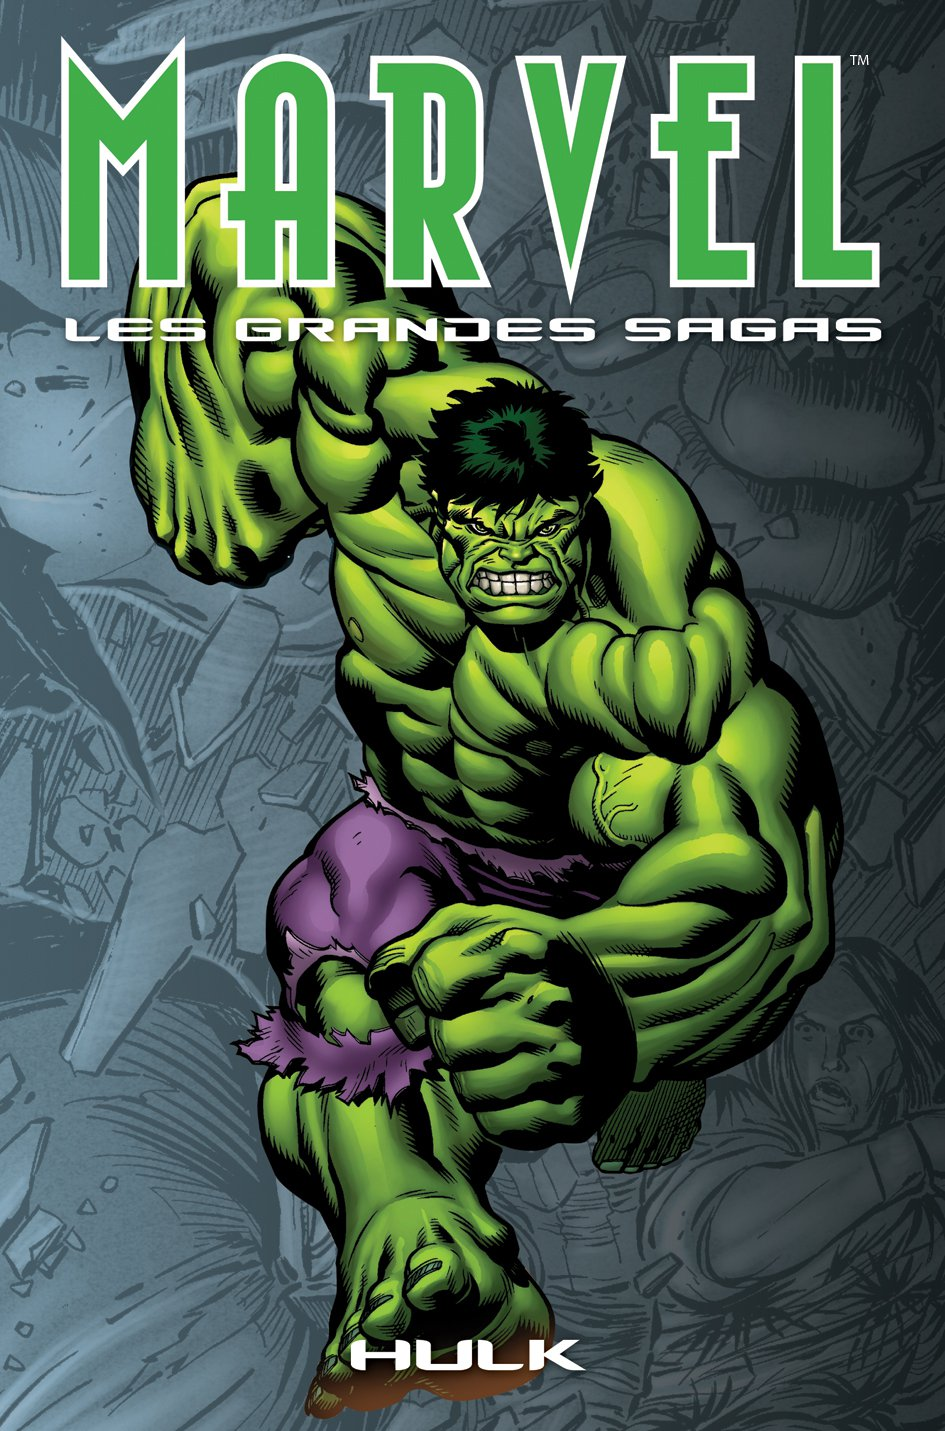 Marvel : Les grandes sagas T6 : Hulk - Marvels (6/10) (0), comics chez Panini Comics de Jones, Busiek, Ross, Romita Jr, Studio F, McGuinness